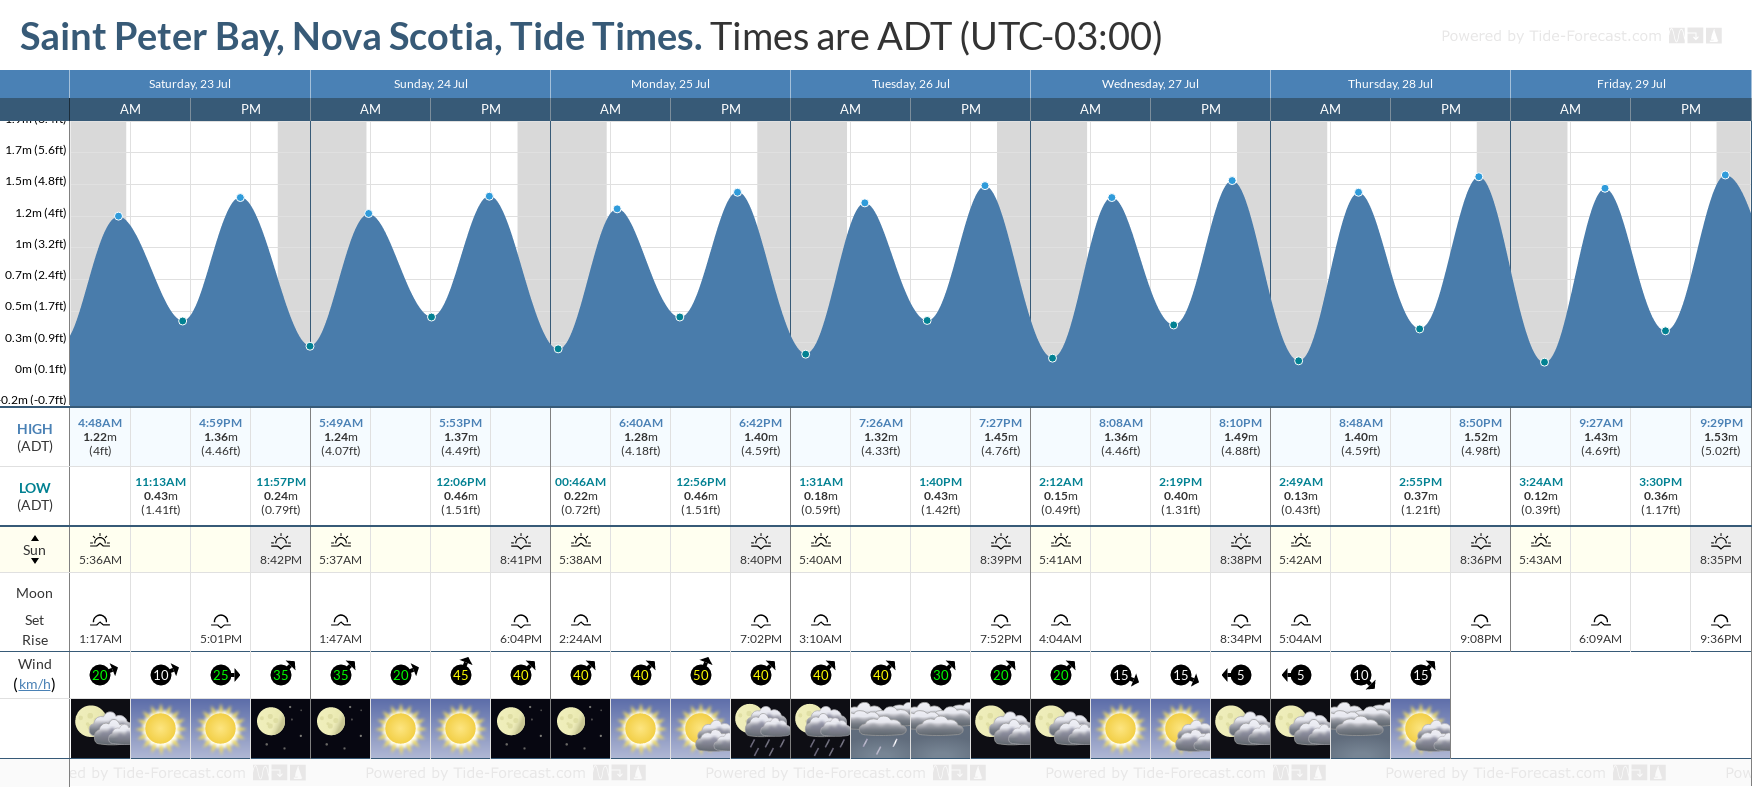 Saint Peter Bay, Nova Scotia Tide Chart including high and low tide tide times for the next 7 days